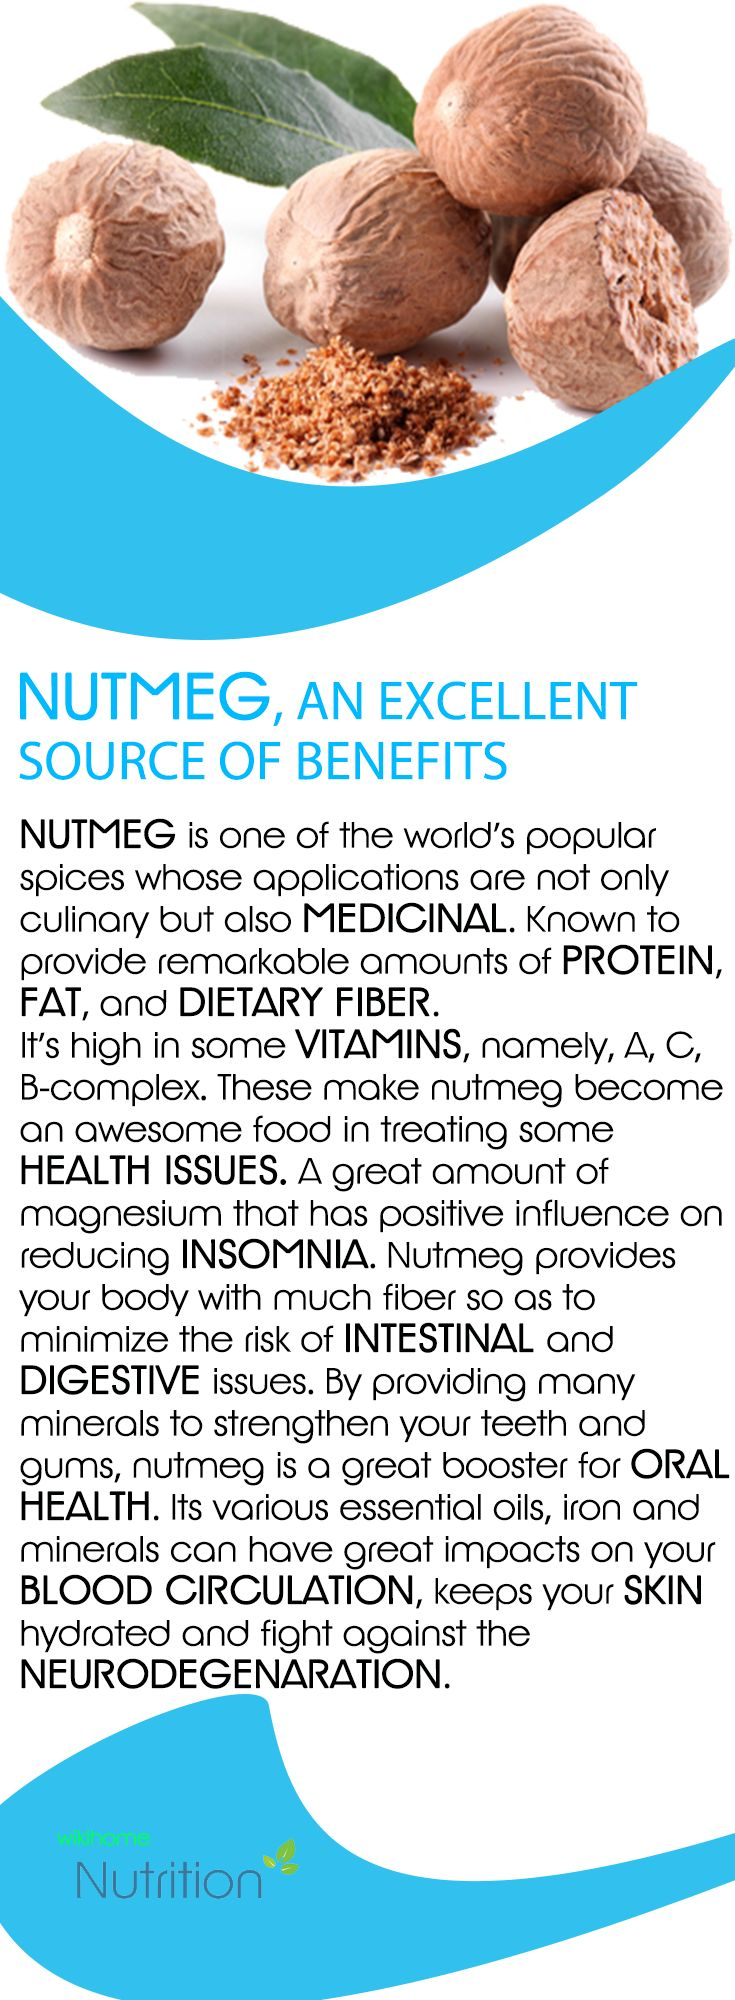 Nutmeg, an Exellent Source of Benefits